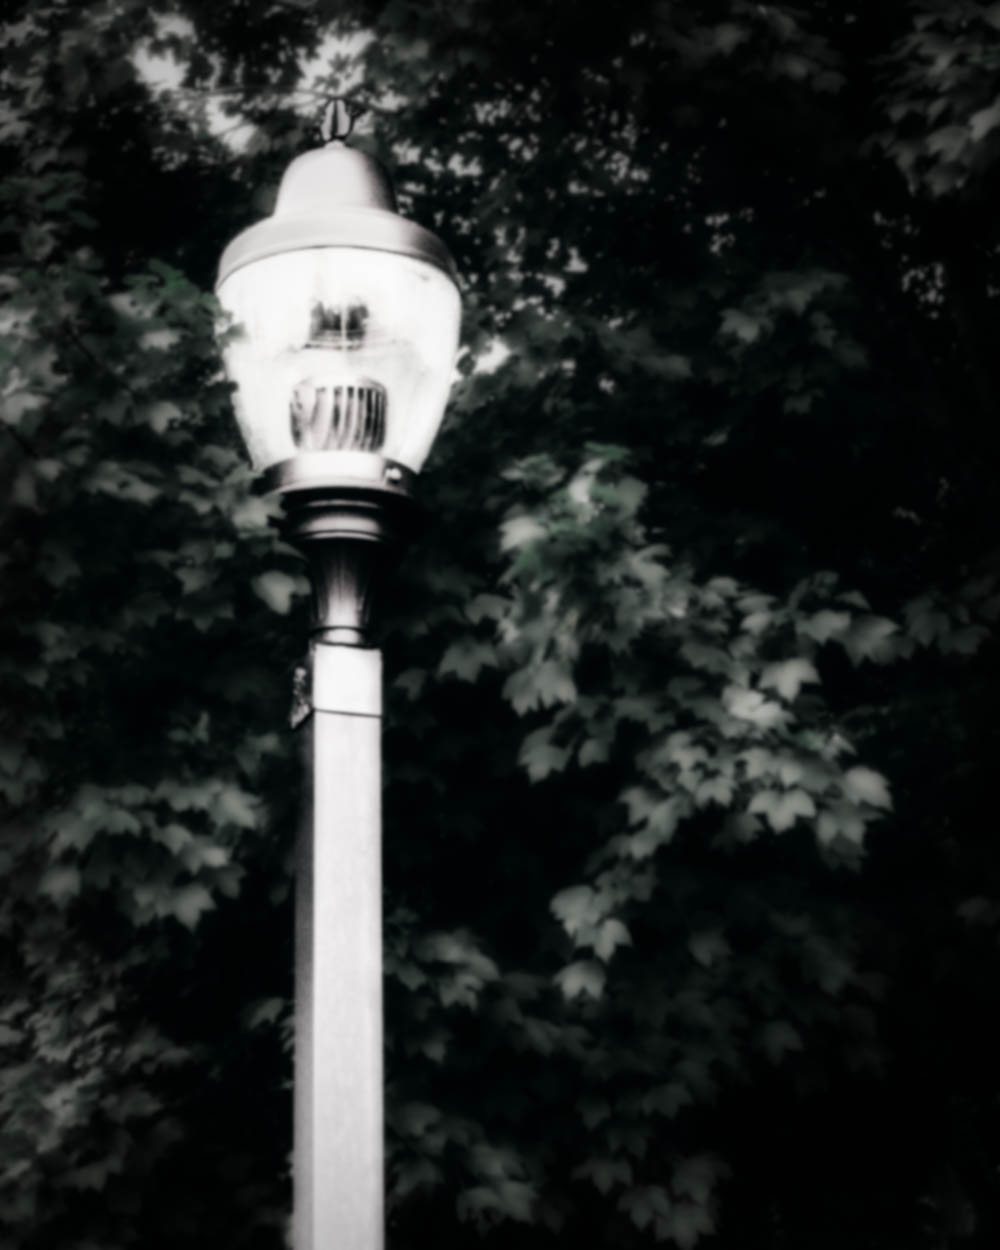 LAMPPOST.Blurry.Monochromatic.Leaves.082419.jpg